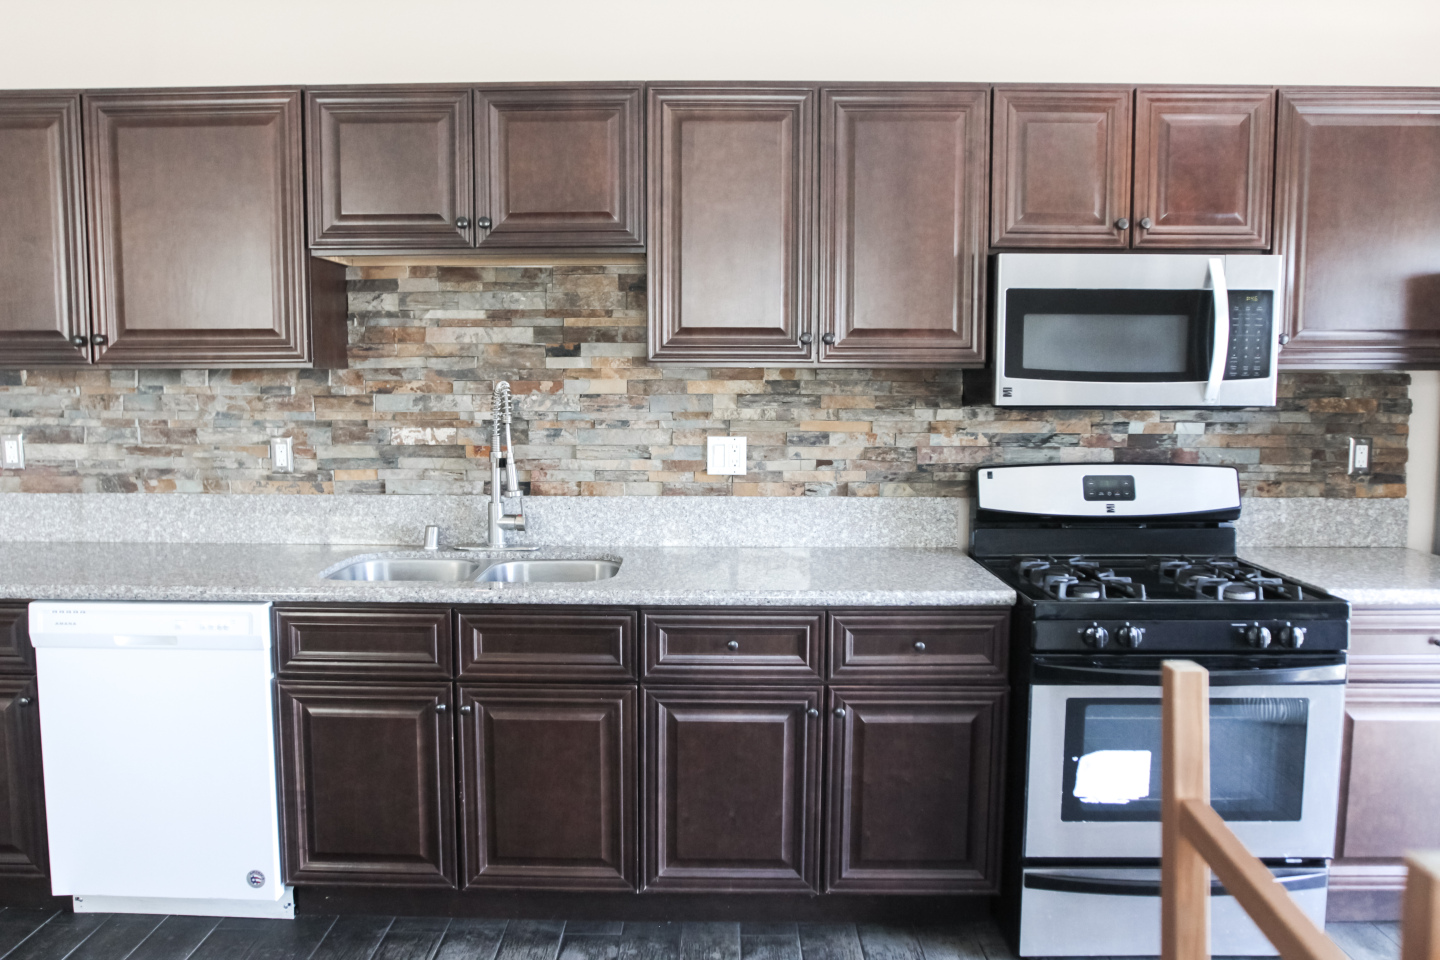 kitchen, dark wood cabinets, silver stove. silver microwave